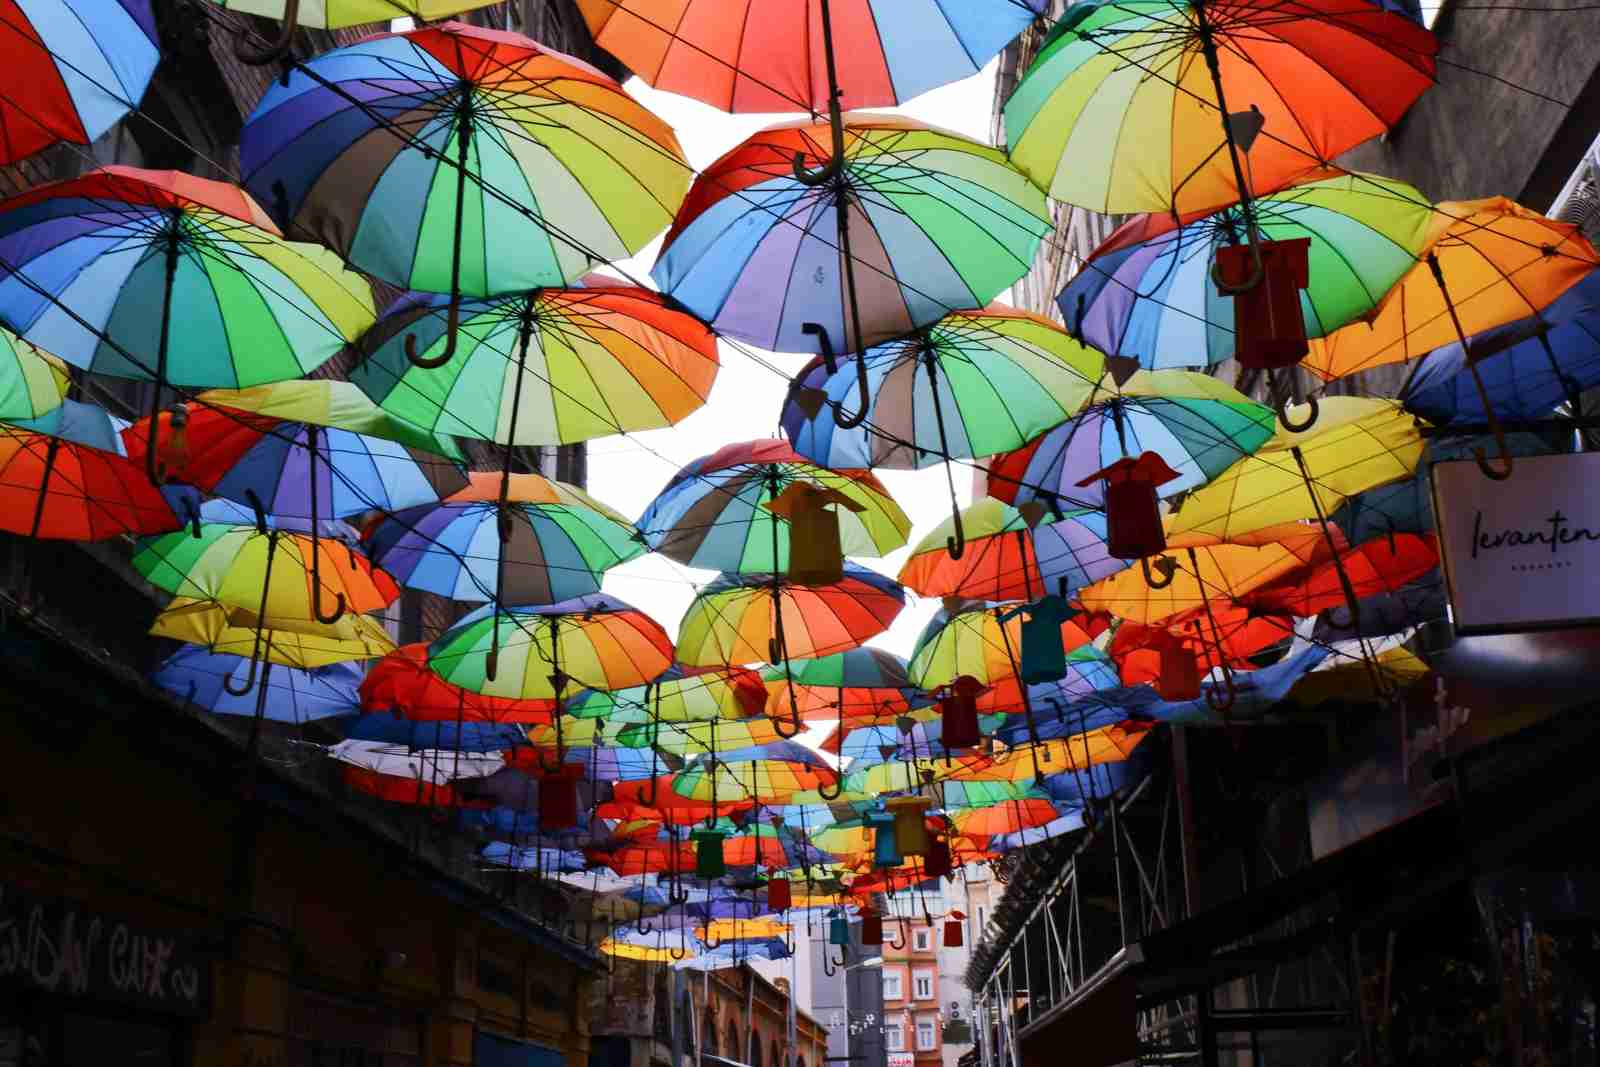 The colorful neighborhood of Karaköy in Istanbul, Turkey. (Photo by Umut Yilman/Unsplash)